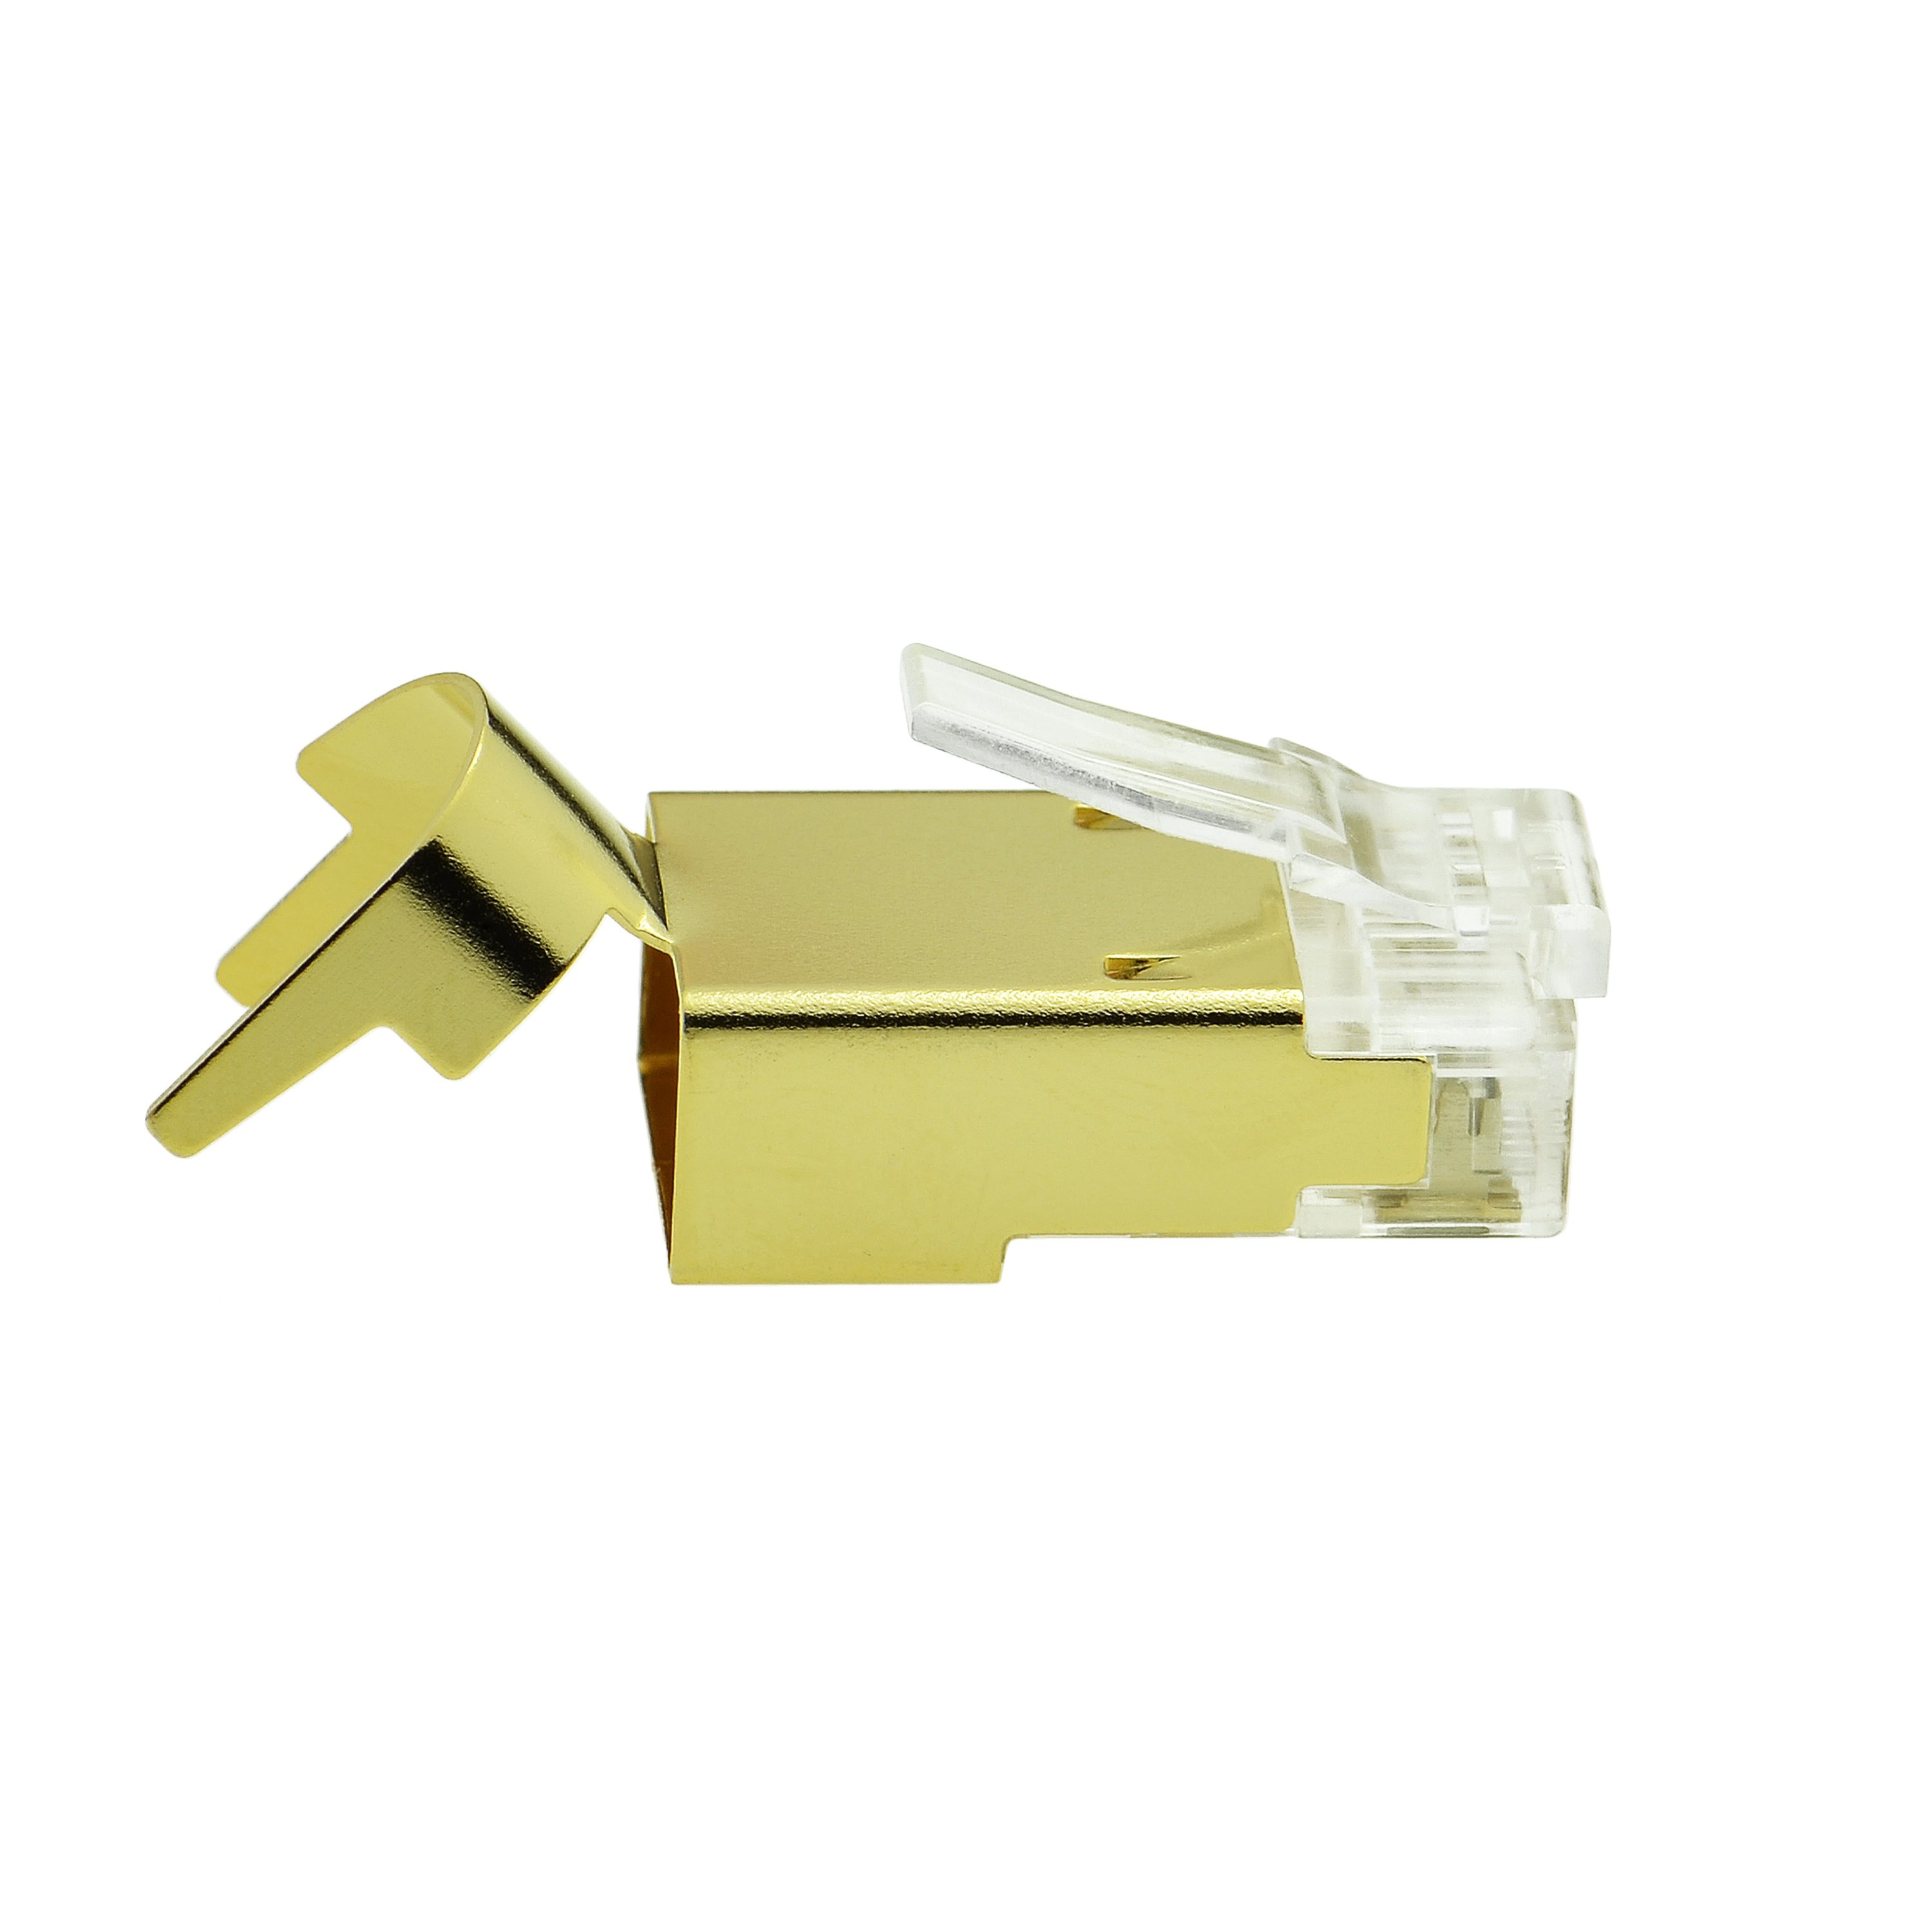 Shop New Cat7 Connector Gold Shielded Rj45 Plug For Wiring My Home Ethernet Cable 8p8c 50um 30 Pack Part 51p C7 30pk